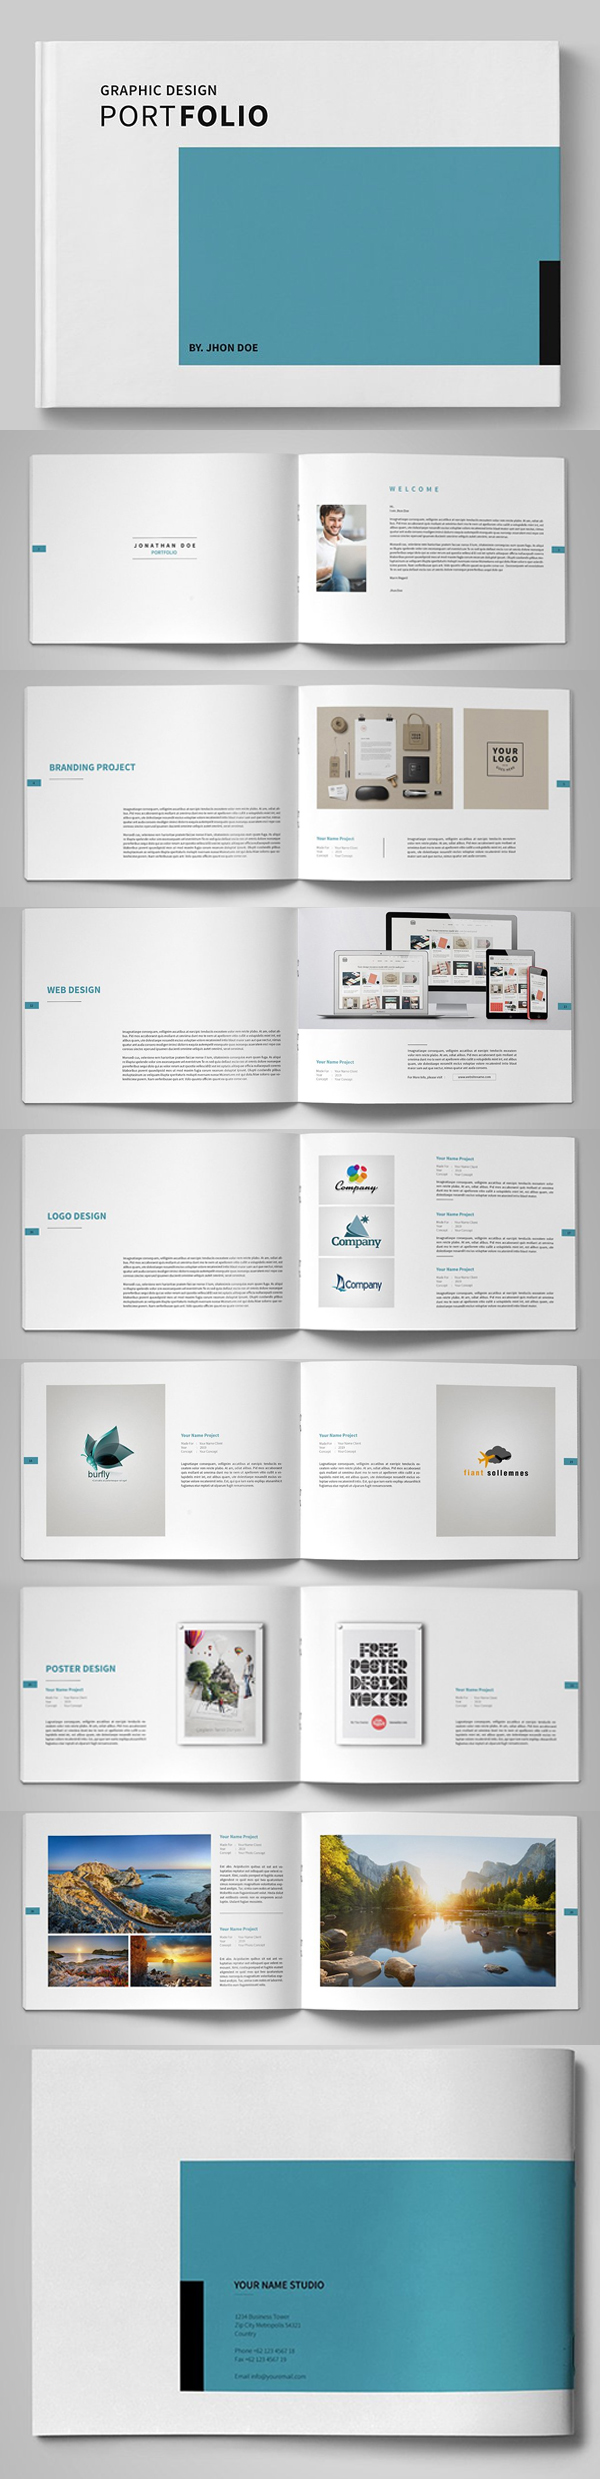 100 Professional Corporate Brochure Templates - 36